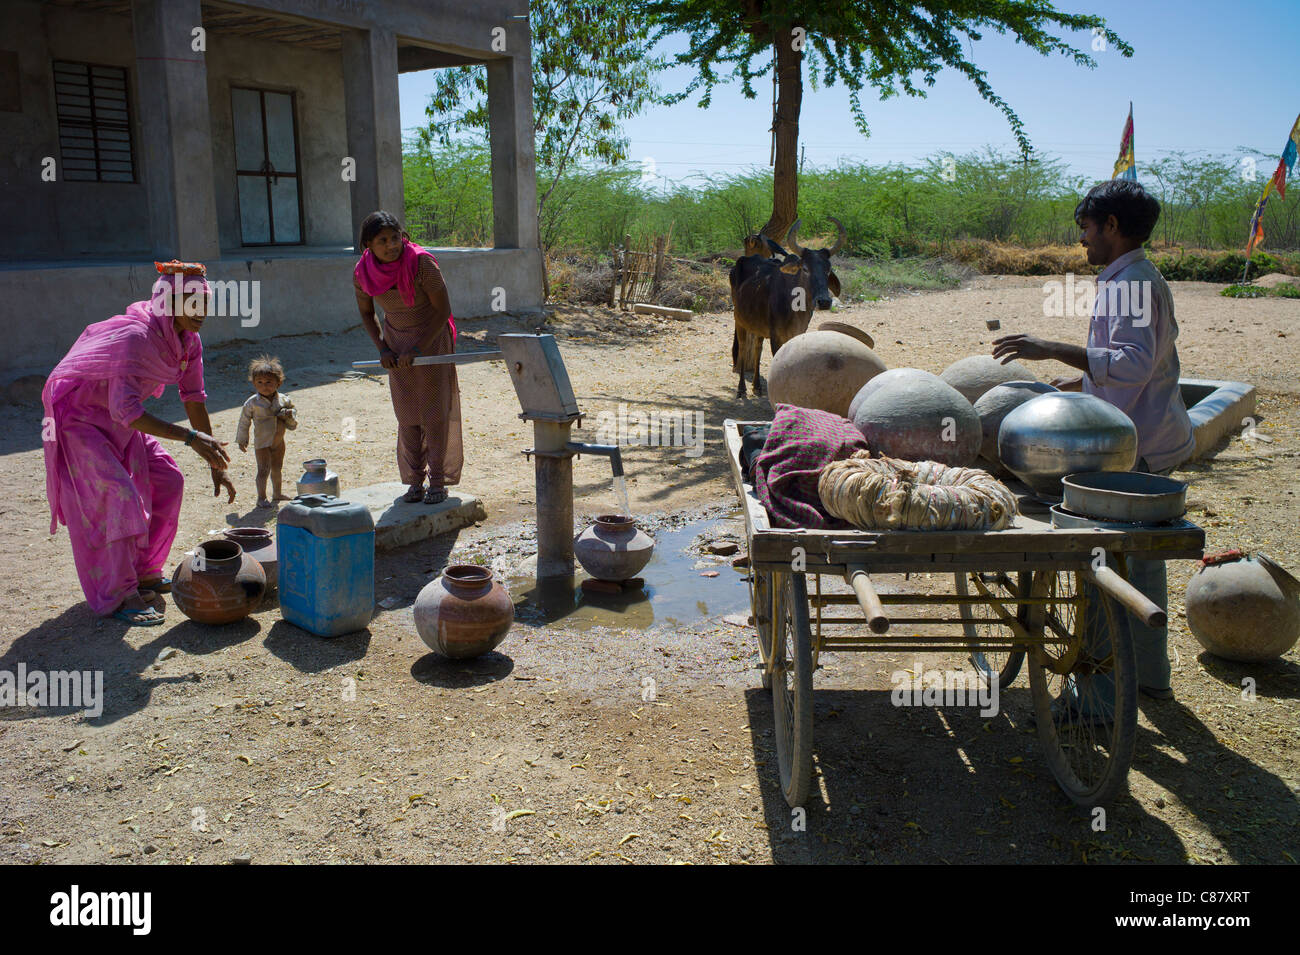 Indian women in sari fetching water pot from well at Jawali village in Rajasthan, Northern India - Stock Image